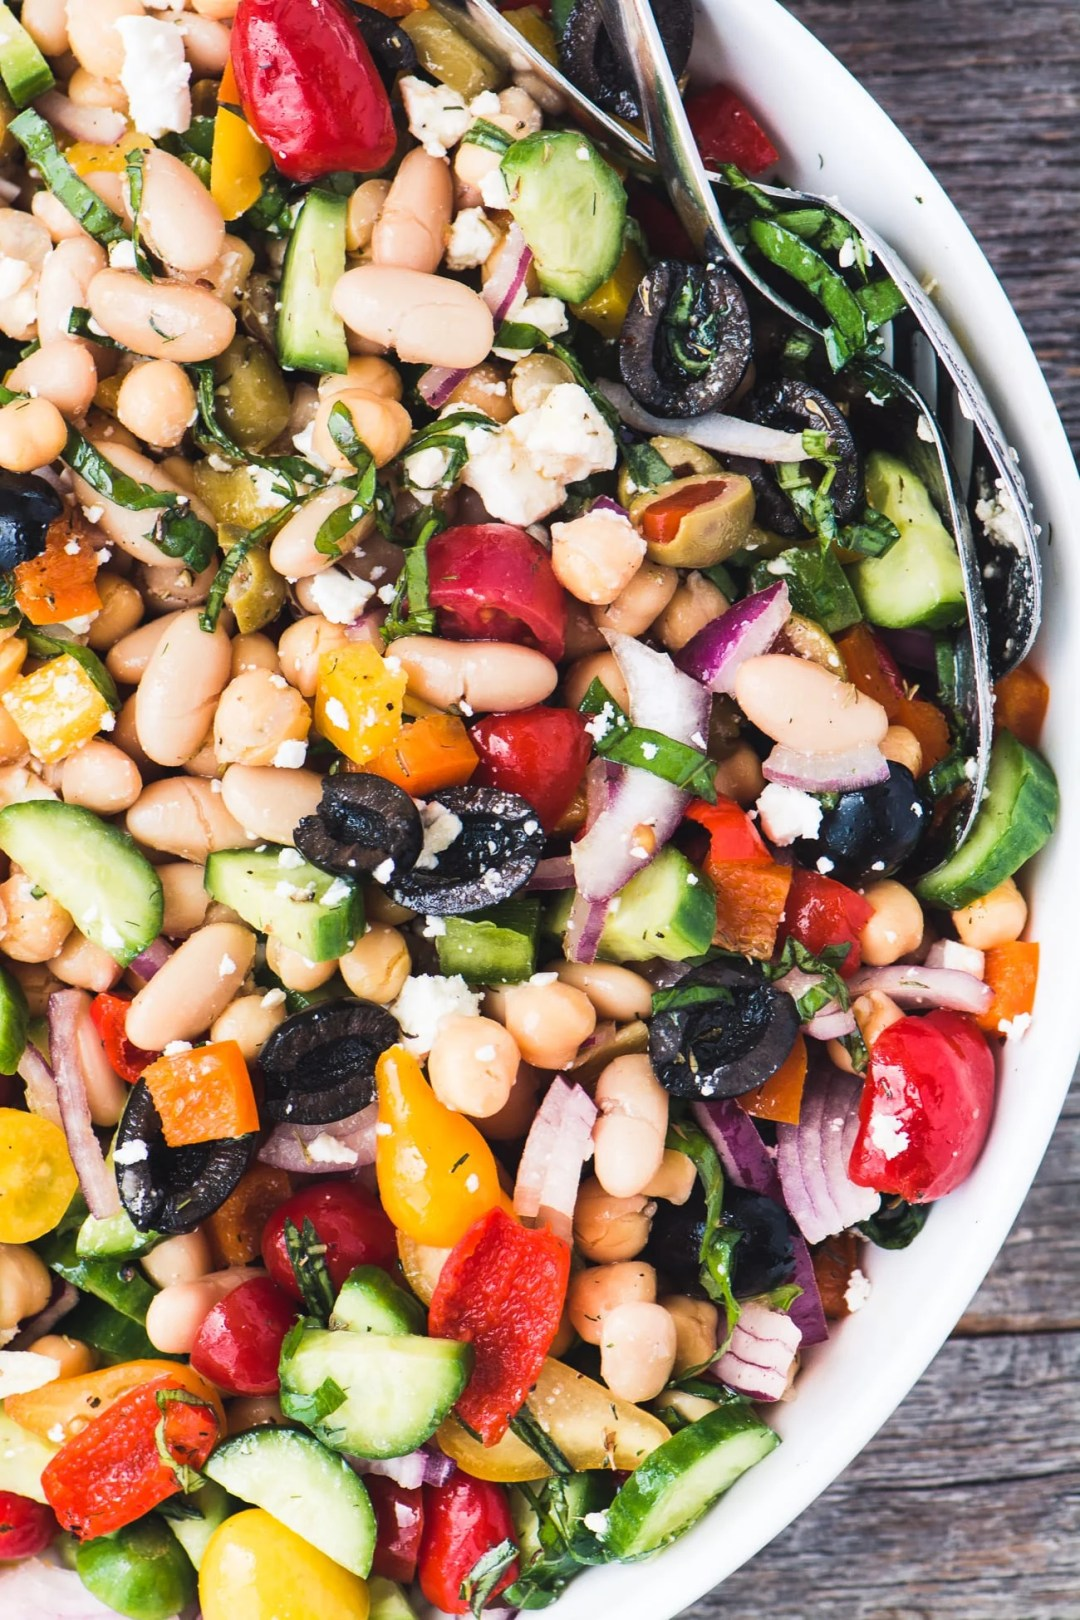 Mediterranean Bean Salad is the perfect picnic, potluck, or barbecue side dish, and it's packed with protein, too!